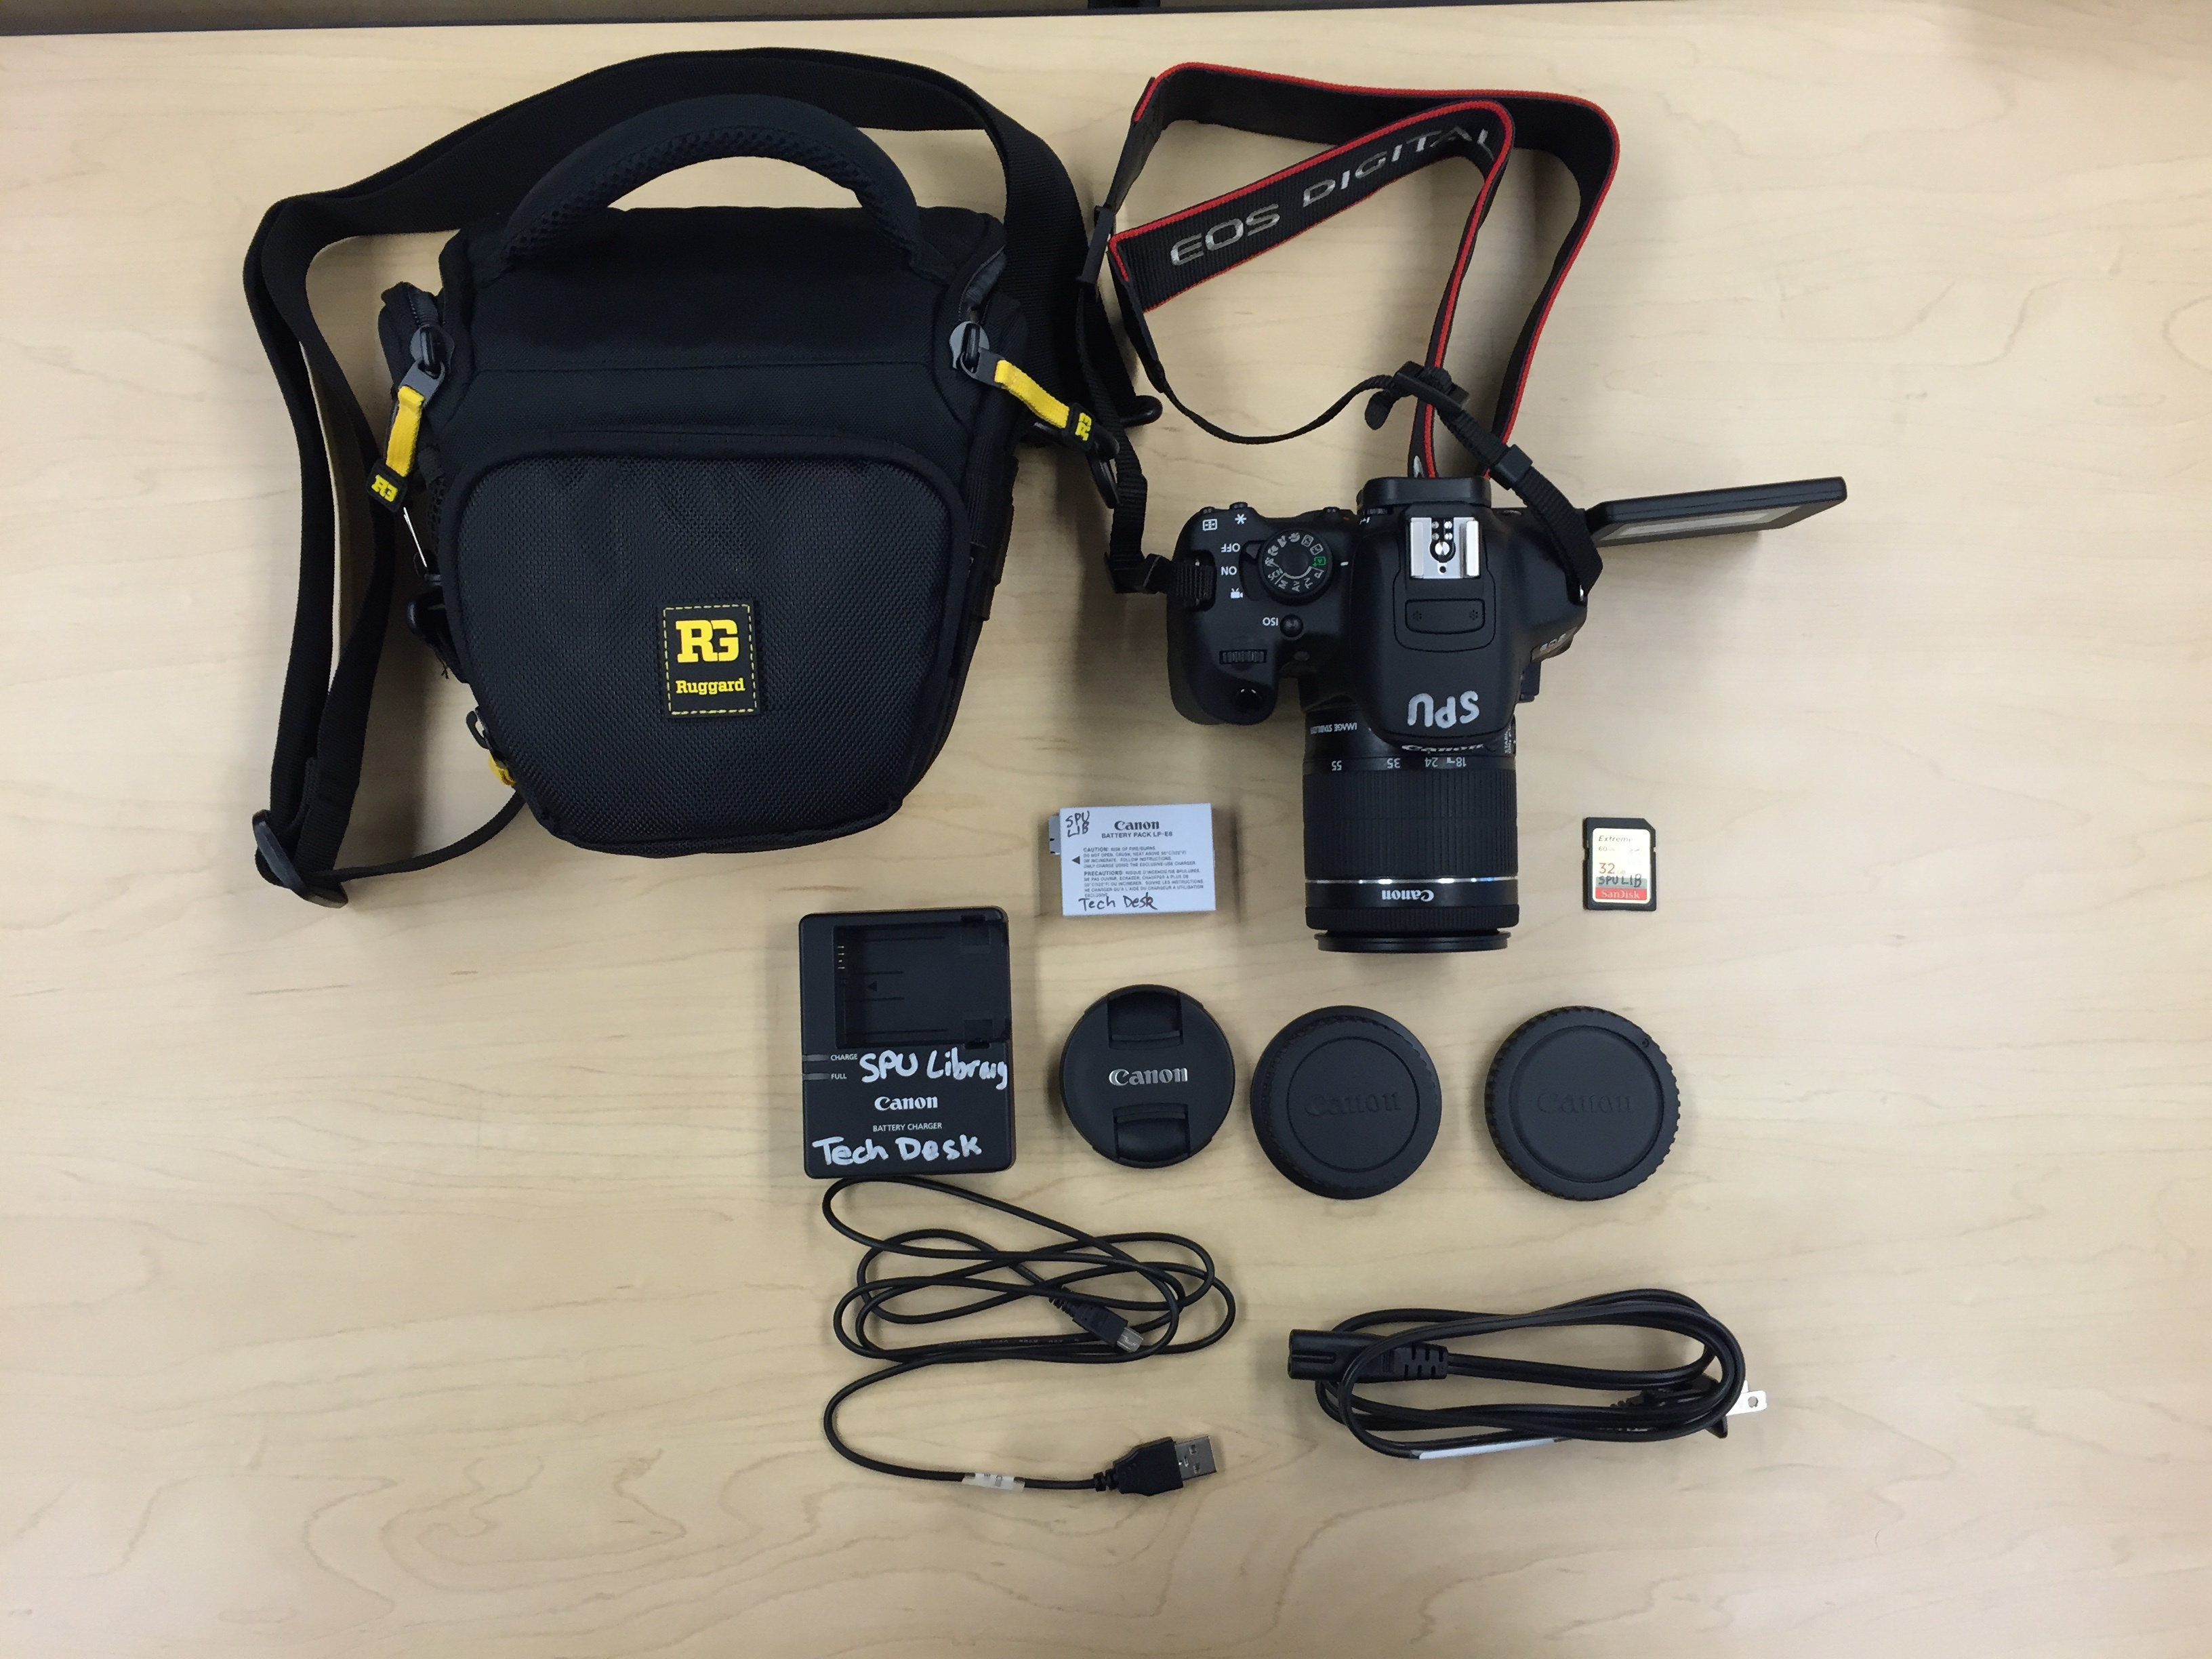 Canon EOS Rebel T5i Camera with shoulder strap, lens, lens cap, 2 lens storage caps, battery charger, battery power cable, battery pack, USB cable, Hunter case, SD card